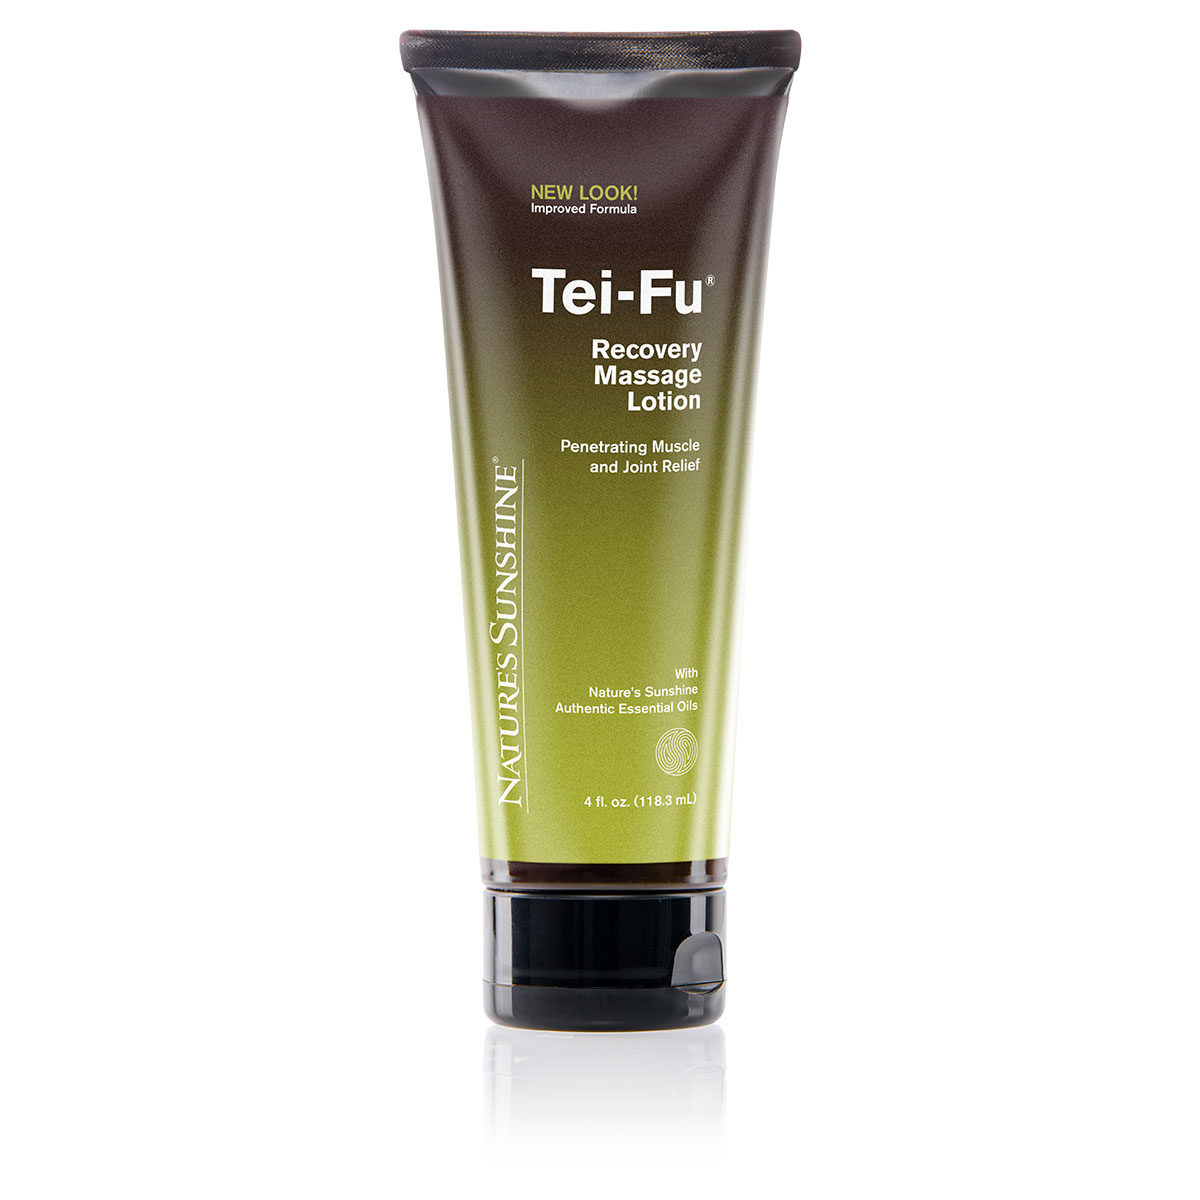 Tei-Fu Recovery Massage Lotion (4 Oz)